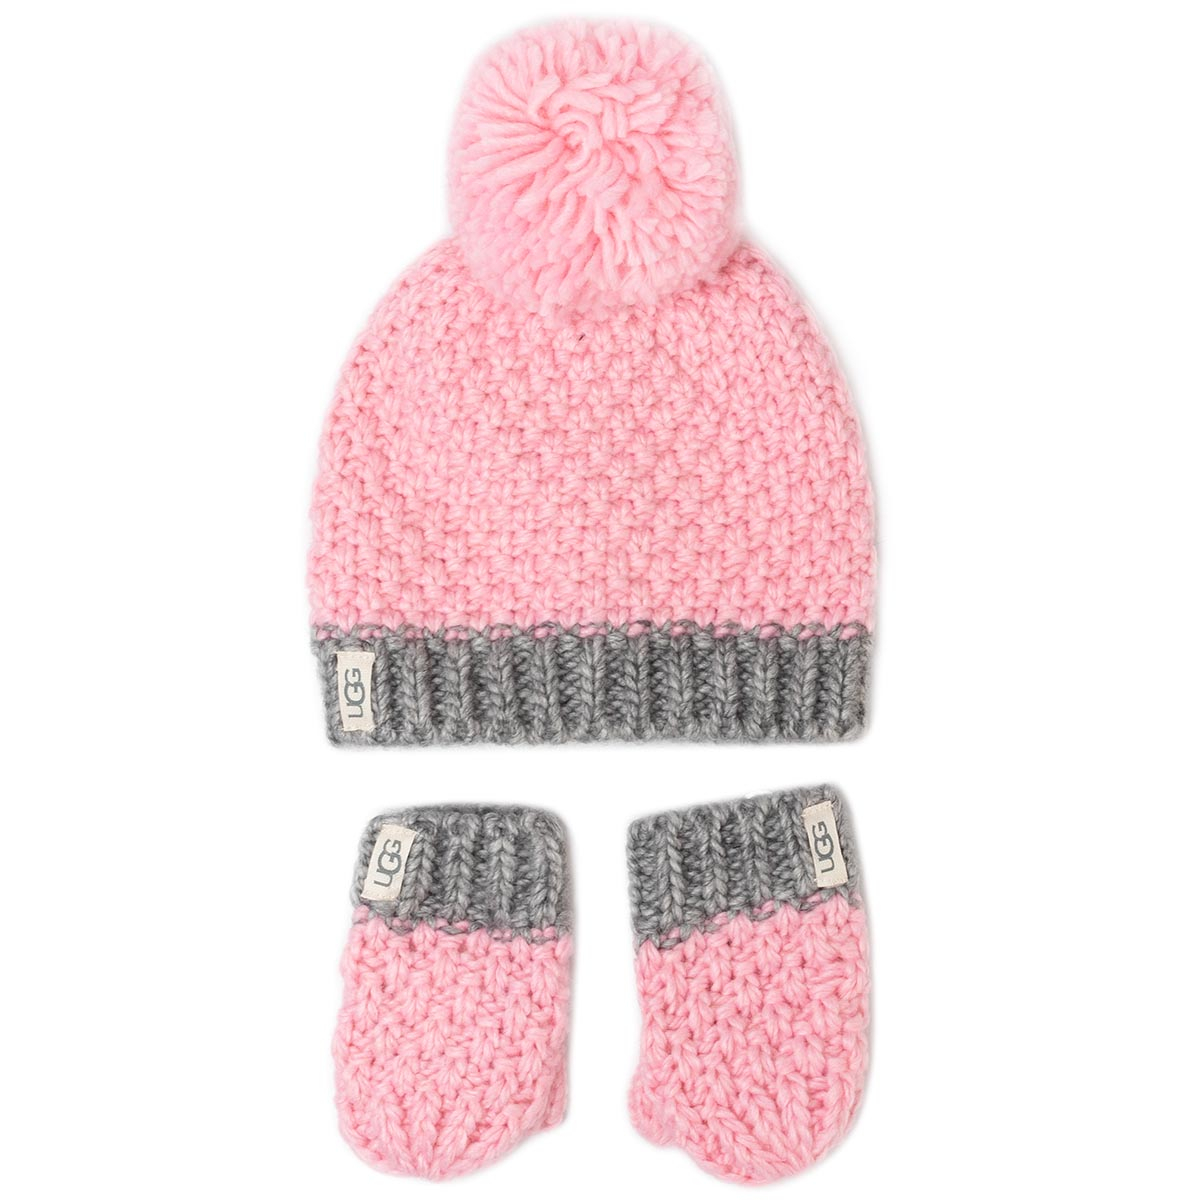 Set Mănuși Și Căciulă Ugg - K Infant Knit Hat And Mitt Set 18802 Seashell Pink imagine epantofi.ro 2021